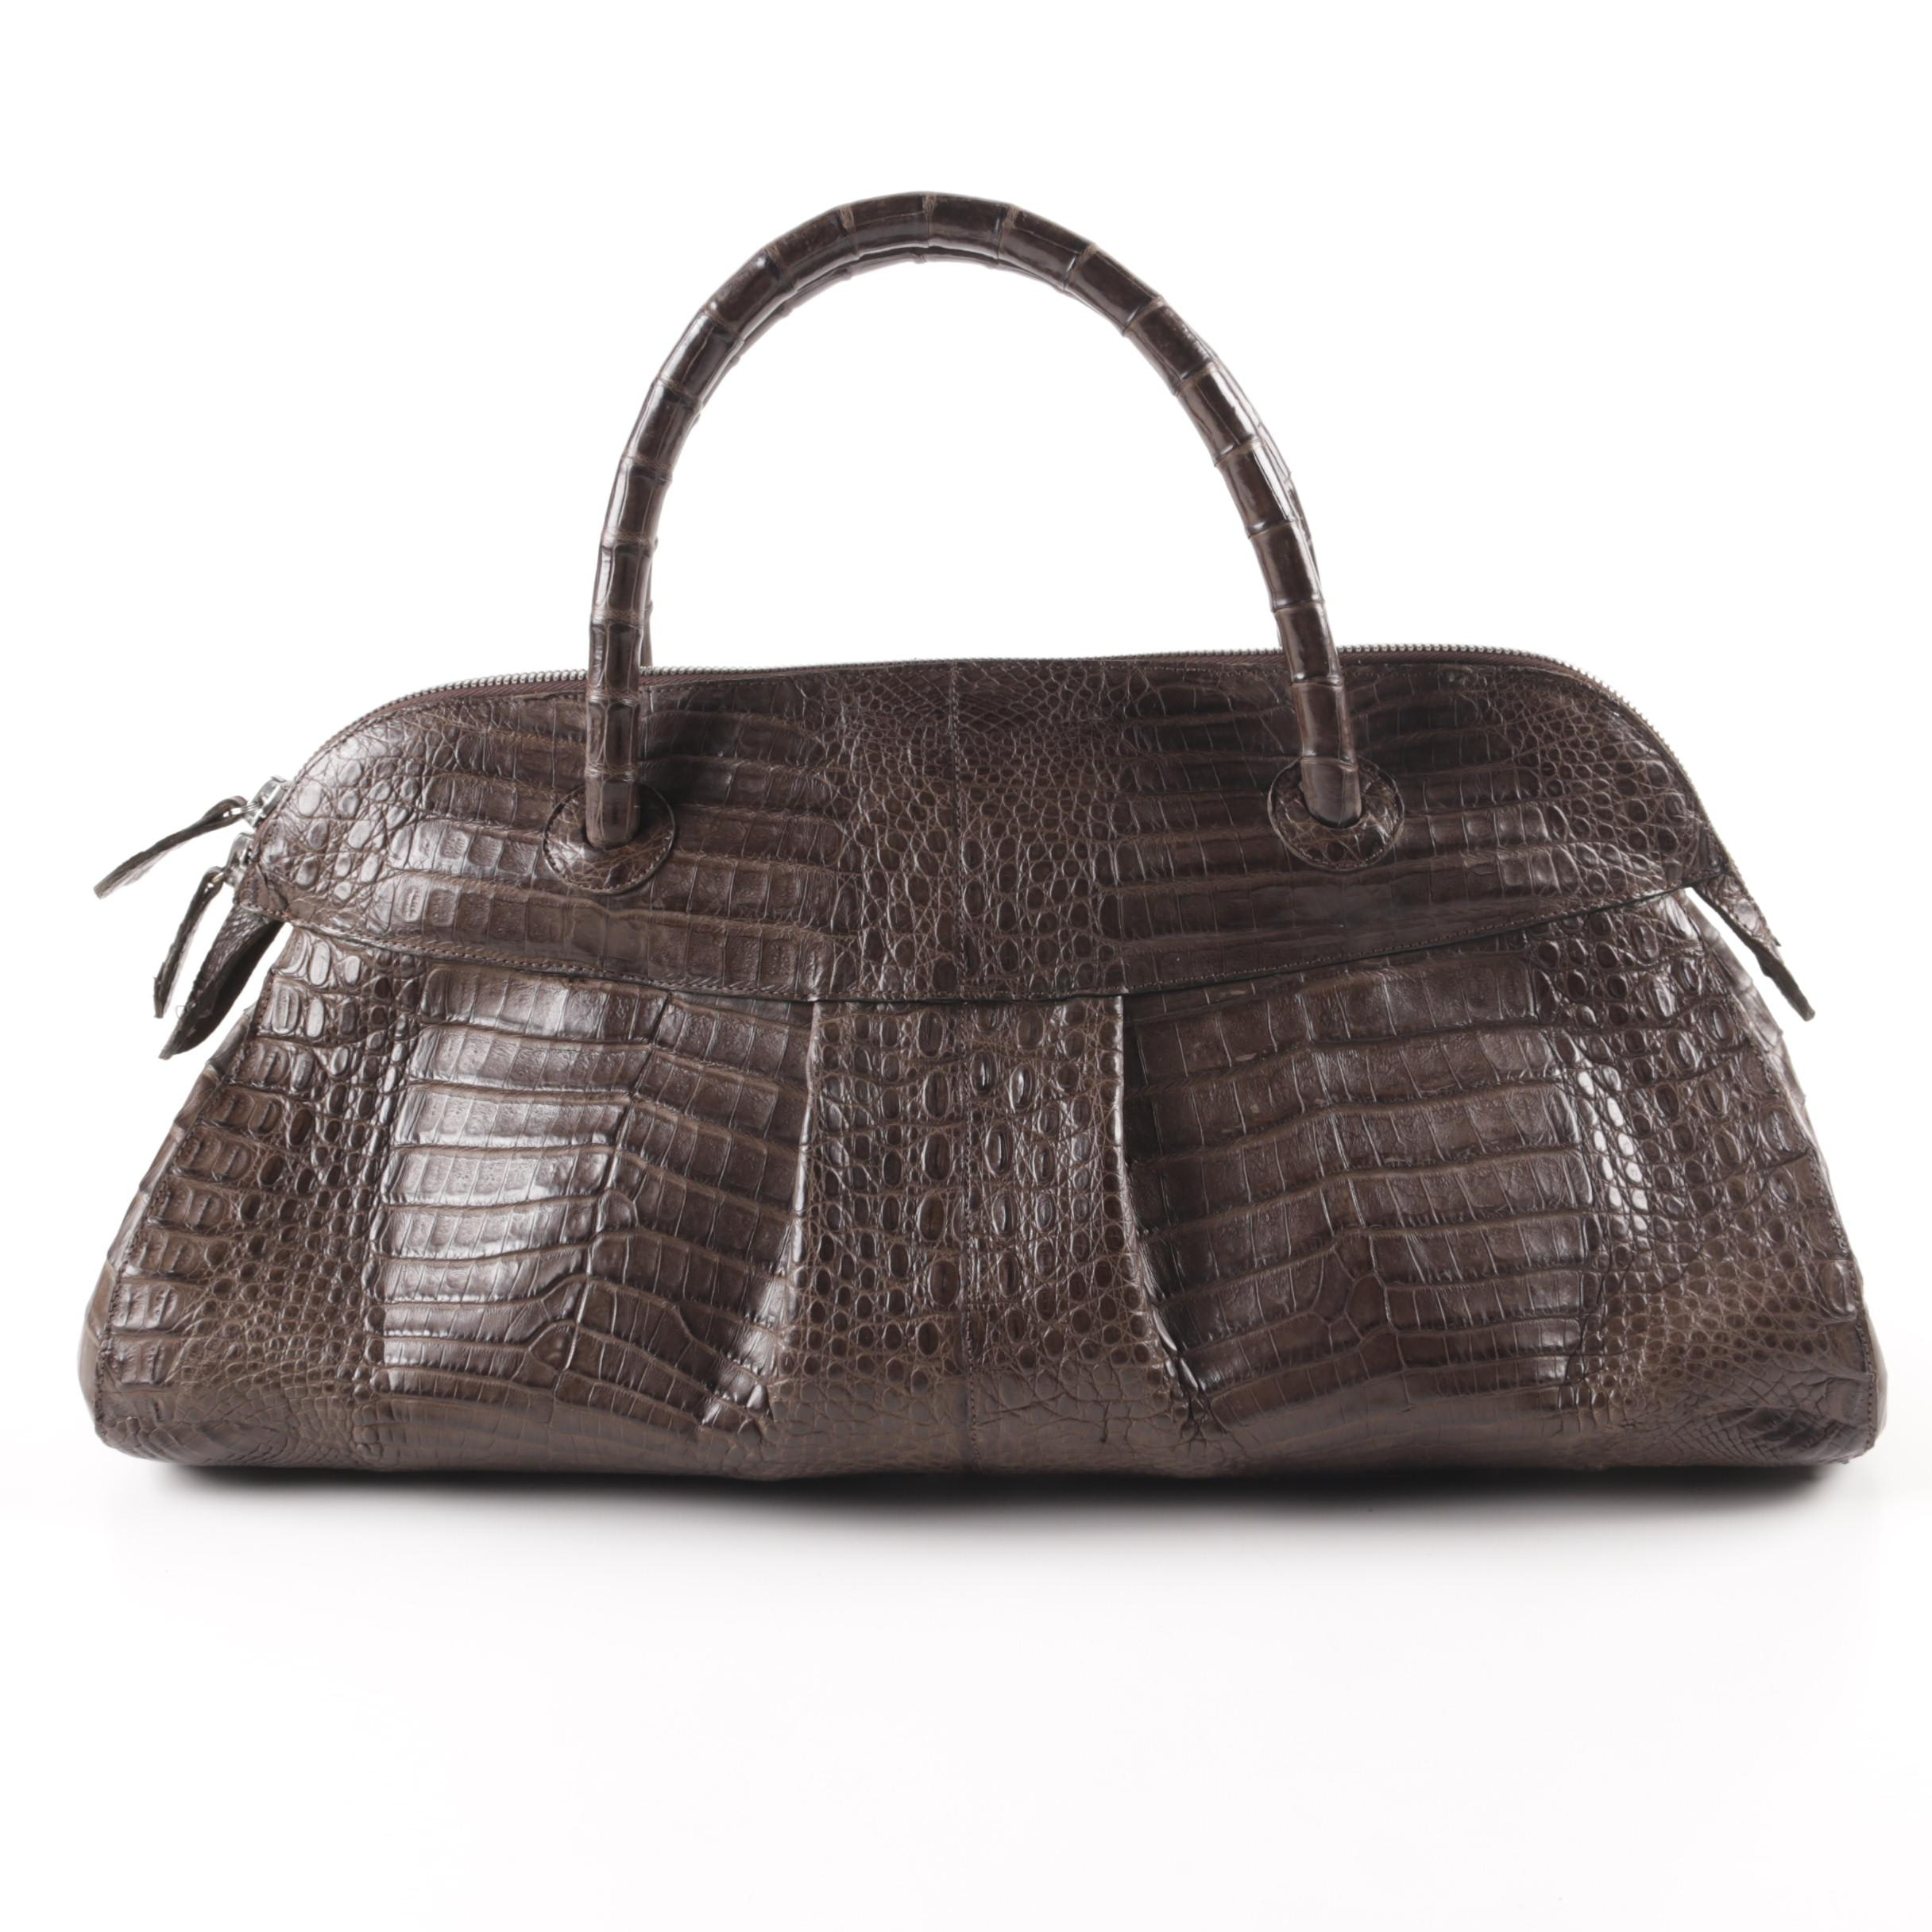 Rhonda Ochs Crocodile Leather Handbag